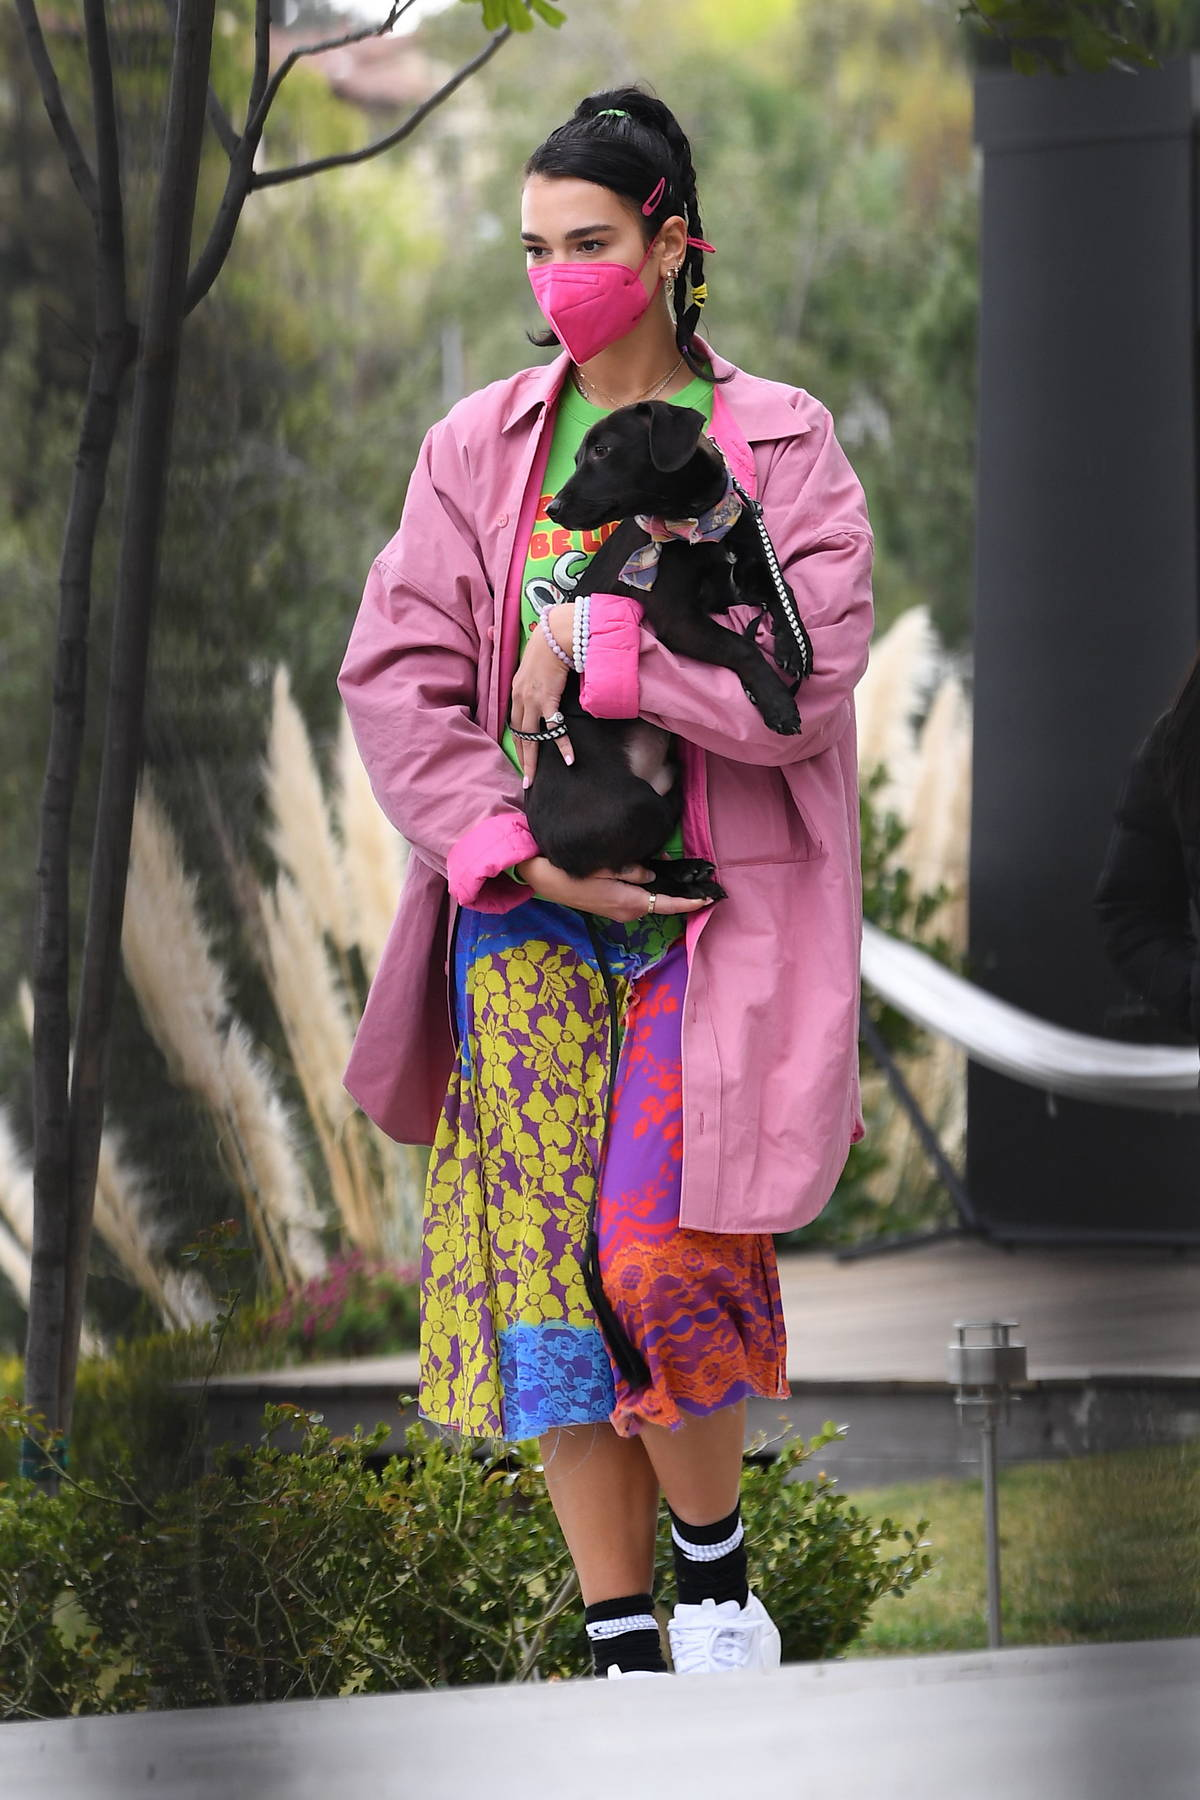 Dua Lipa and Anwar Hadid spotted house hunting as they view a luxurious $3 Million house in Los Angeles